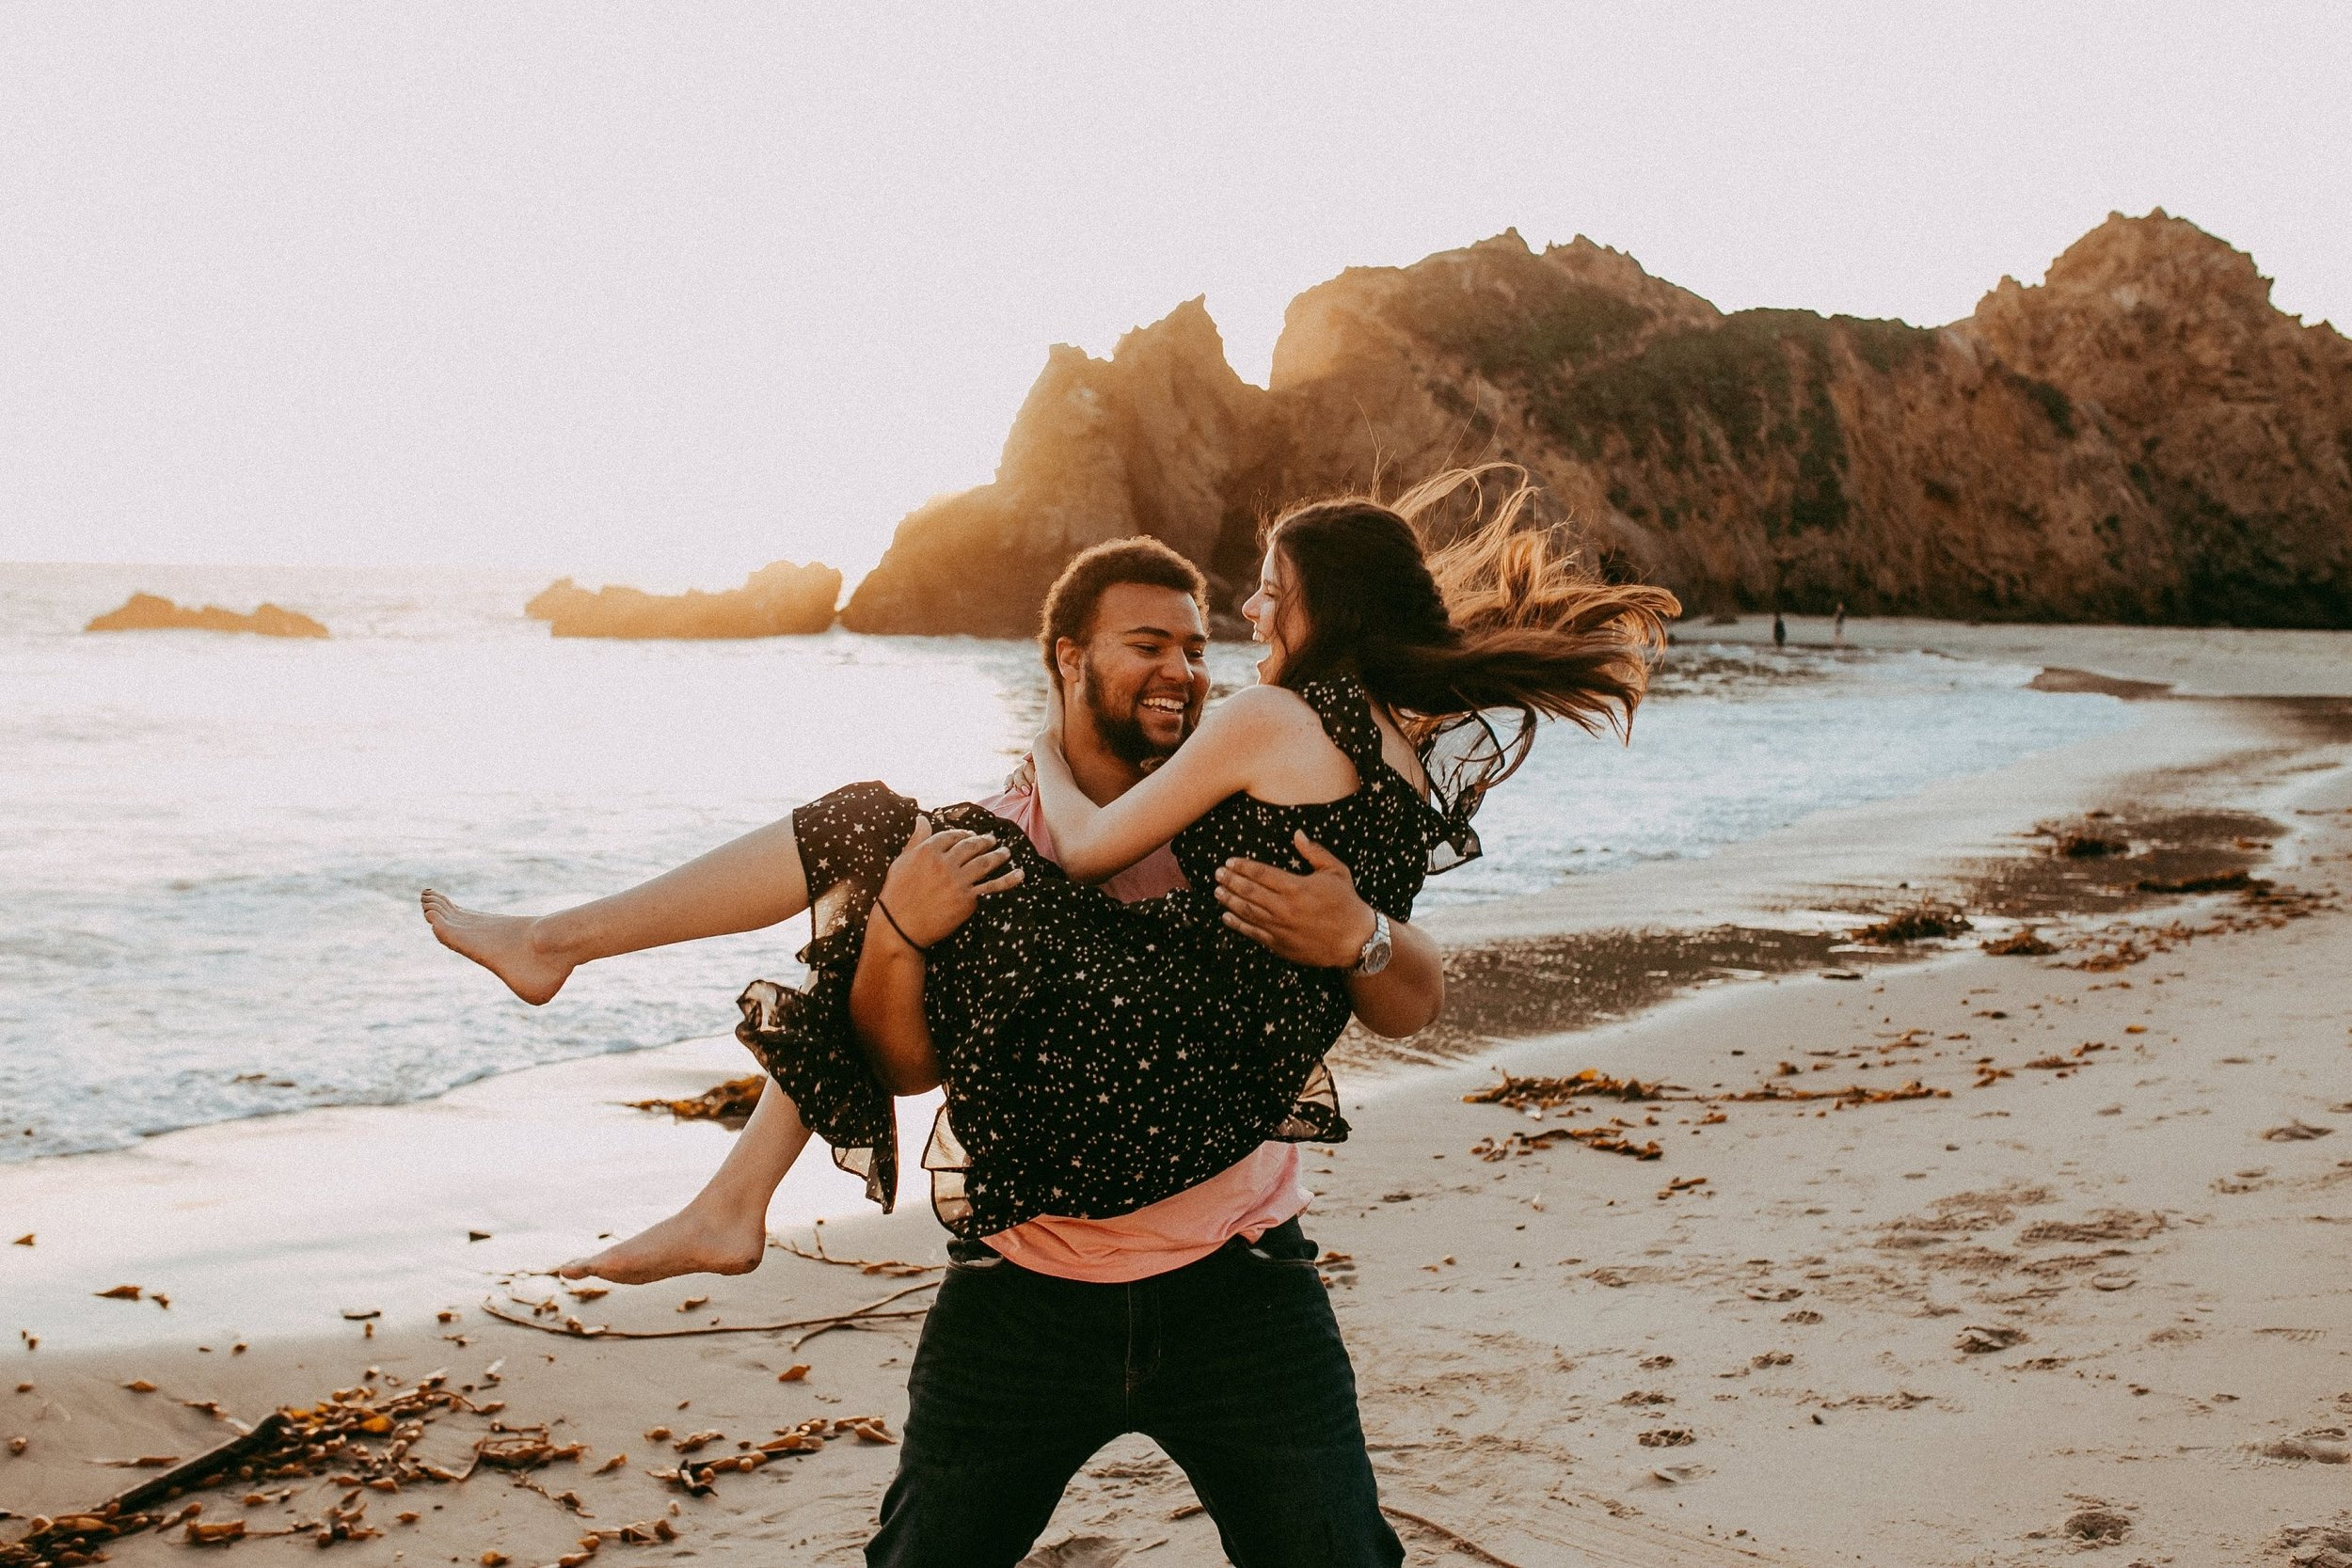 Jess + Jackson   Adventurous couple session in Big Sur, CA at sunset.